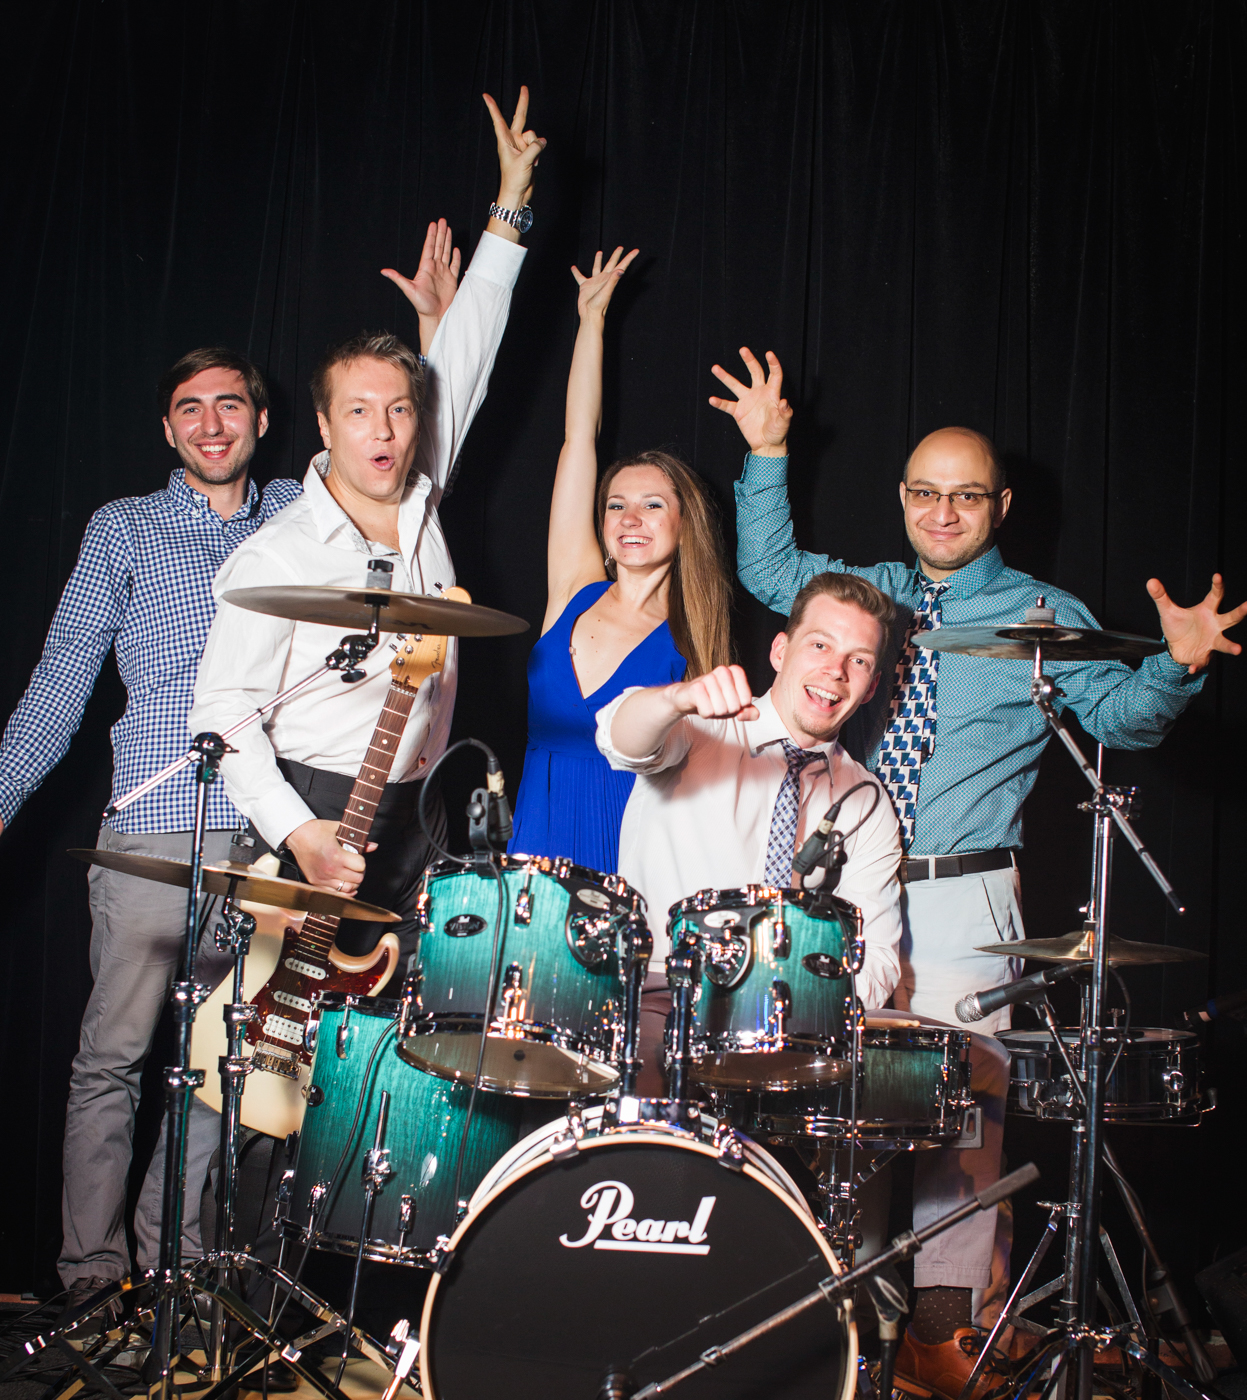 Photo-Shoot-for-a-local-band-Ksenia-Pro-Photography-10